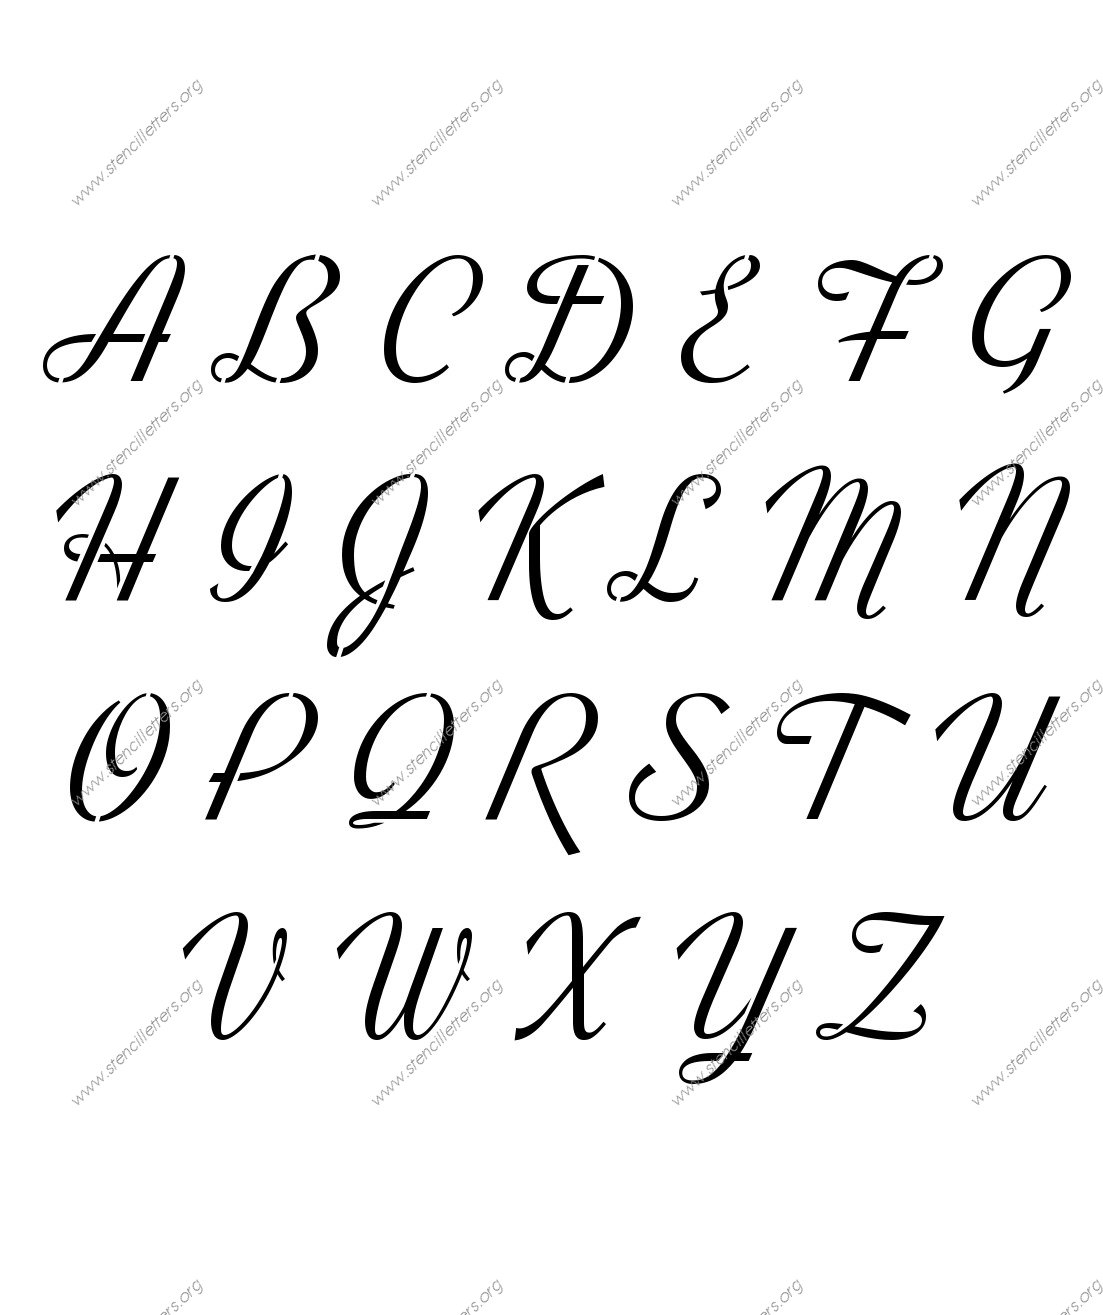 Retro Vintage Cursive Uppercase Amp Lowercase Letter Stencils A Z 1 4 To 12 Inch Sizes